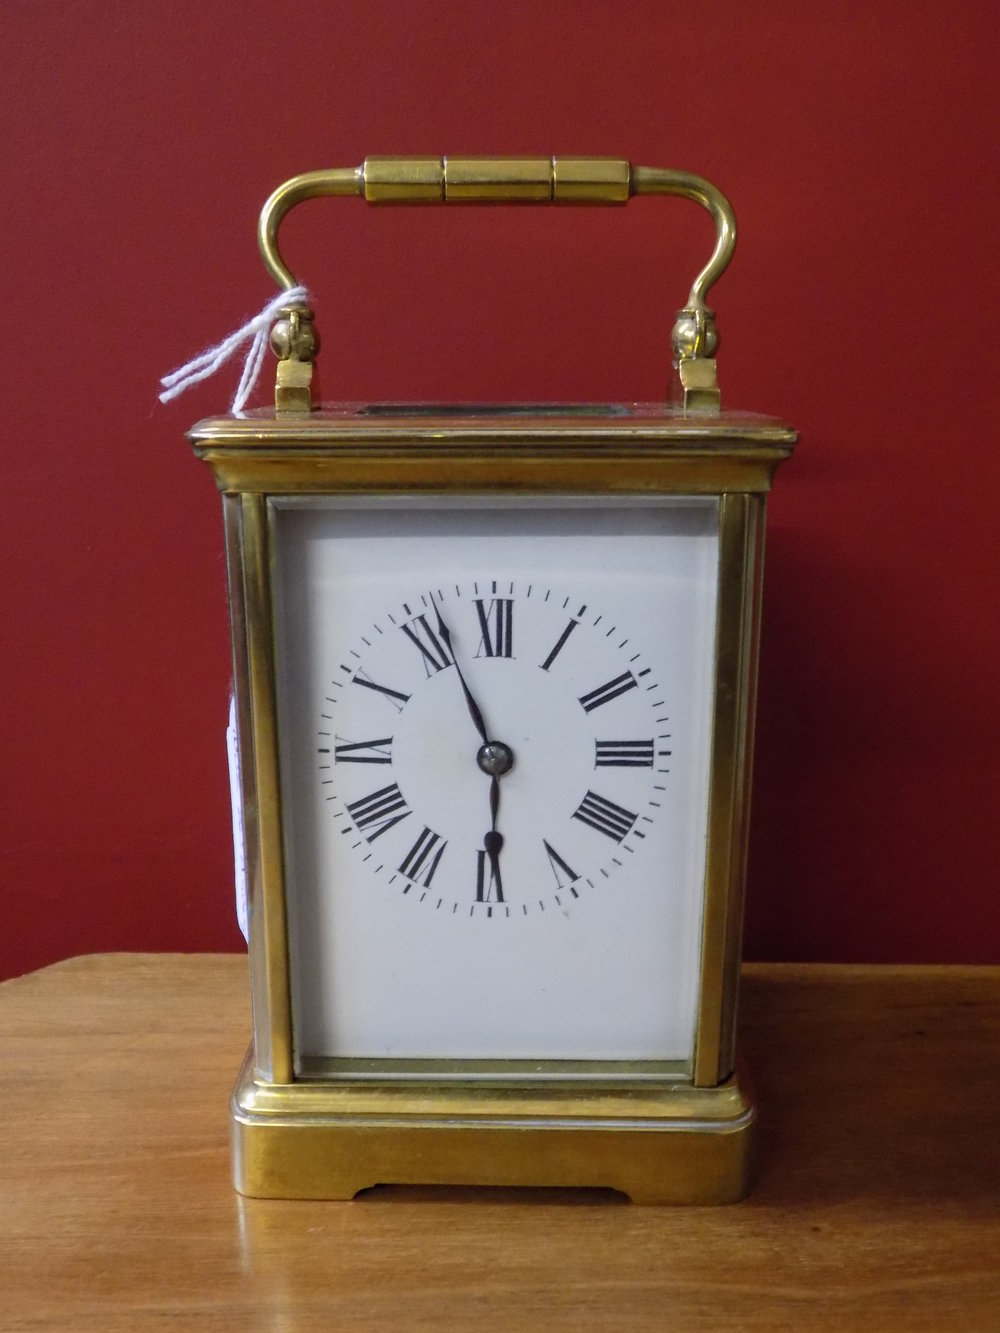 8 Day carriage clock with twin train striking £340.00